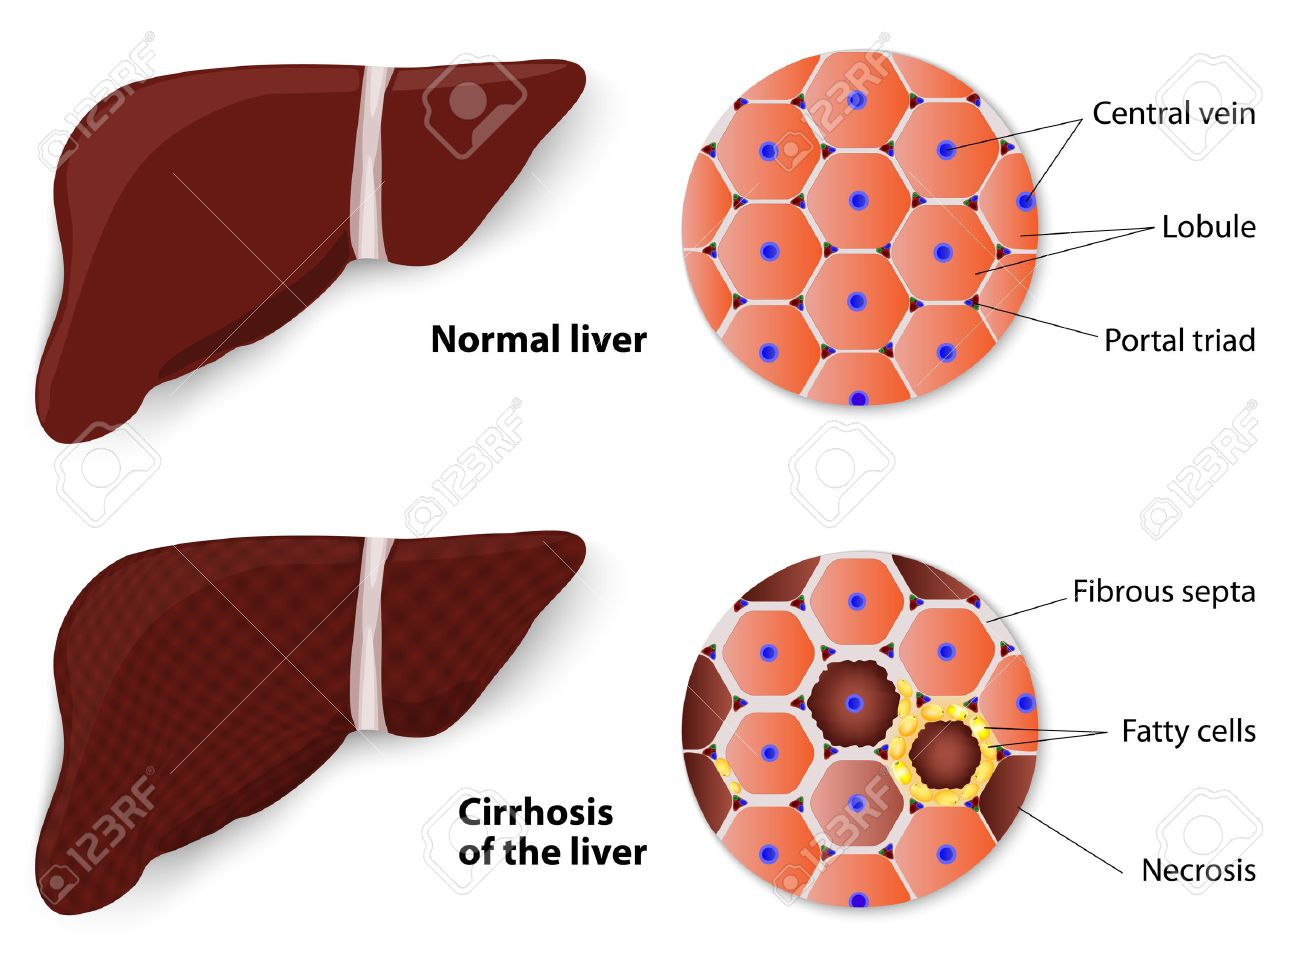 cirrhosis of the liver and normal liver structure of the liver